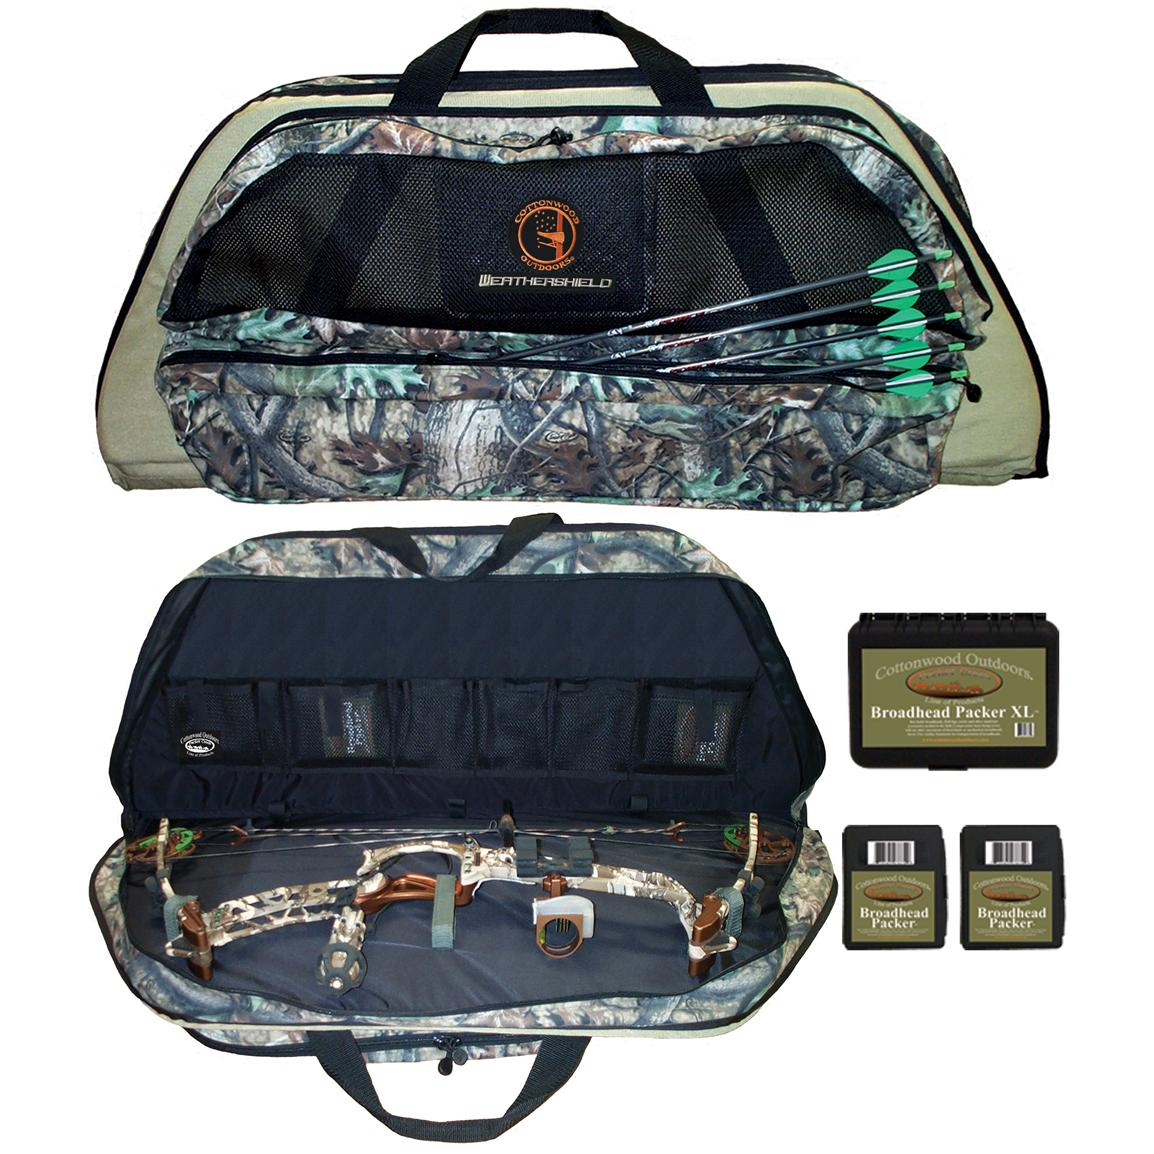 Cottonwood Outdoors Weathershield Bow Case with Broadhead Packer Boxes